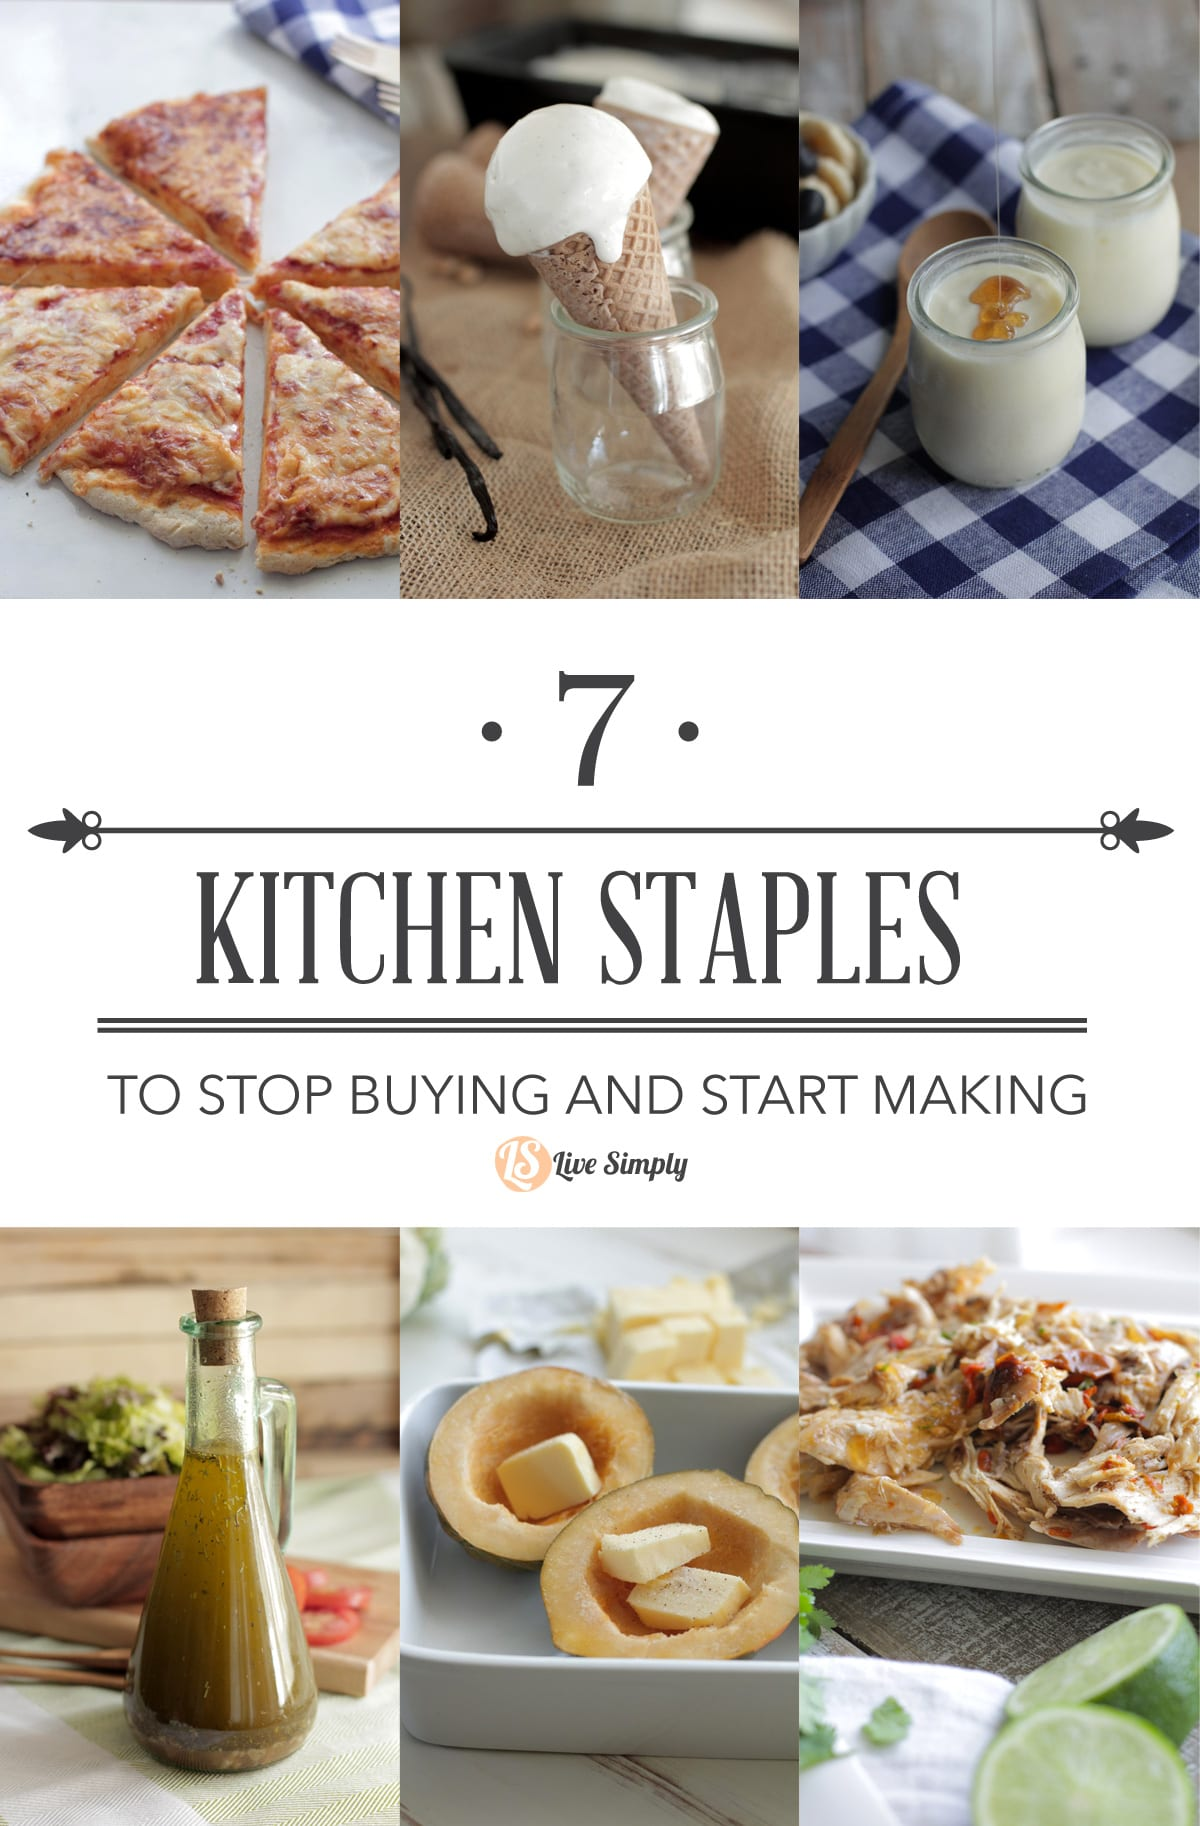 7 Kitchen Staples To Stop Buying And Start Making  Live. How To Decorate Living Room In Apartment. Living Room Italian Style. Green Orange Living Room Decor. The Living Room Restaurant Kuching. Living Room Stone Wall Tiles. Live Laugh Love Living Room Ideas. Living Room Furniture At Good Prices. House Plants For Living Room